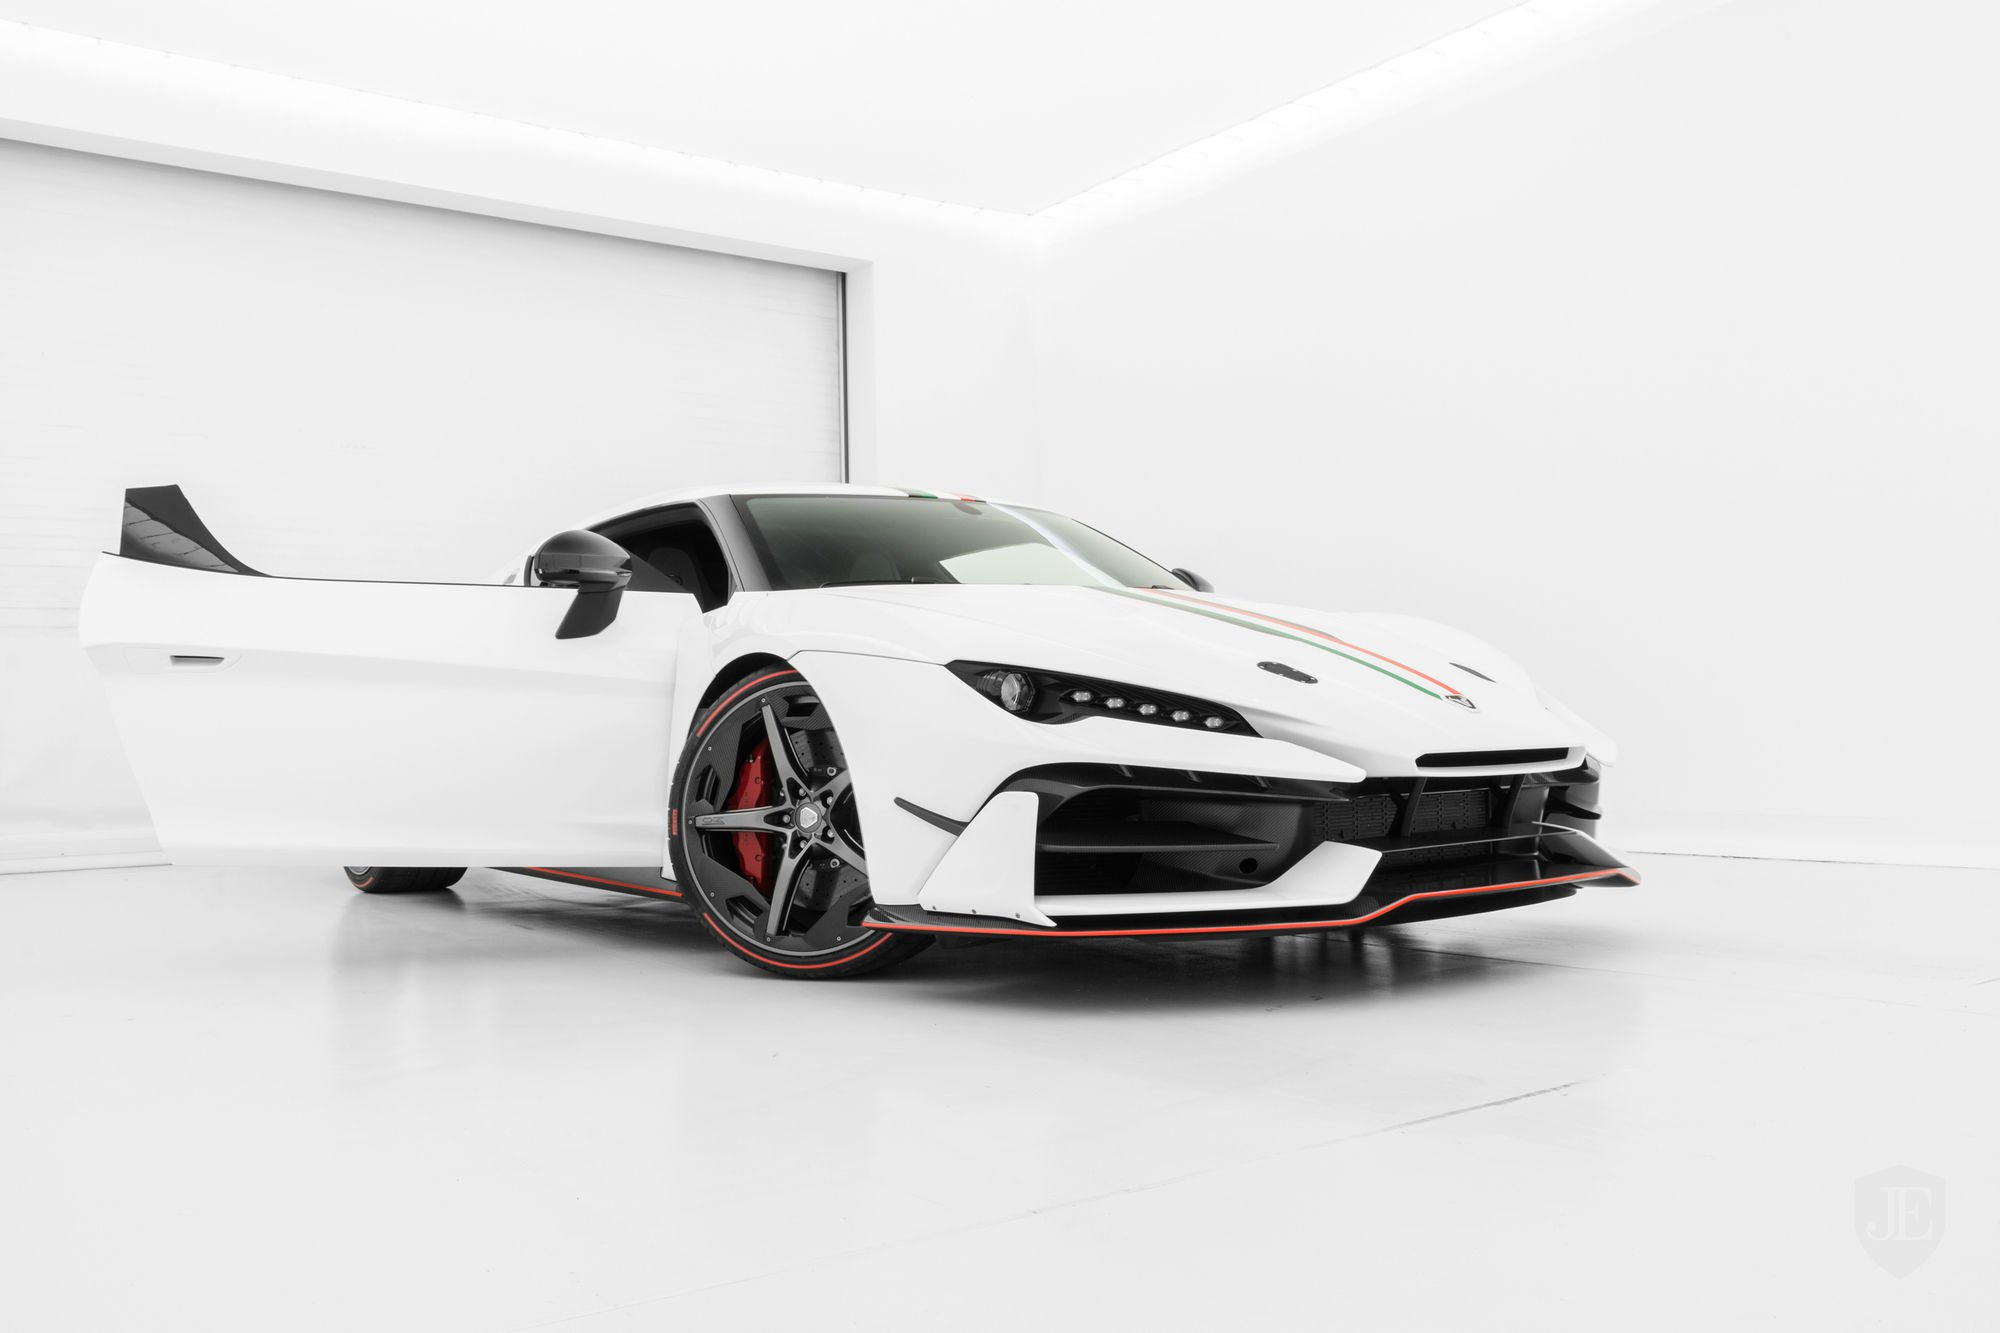 Italdesign Zerouno (15)